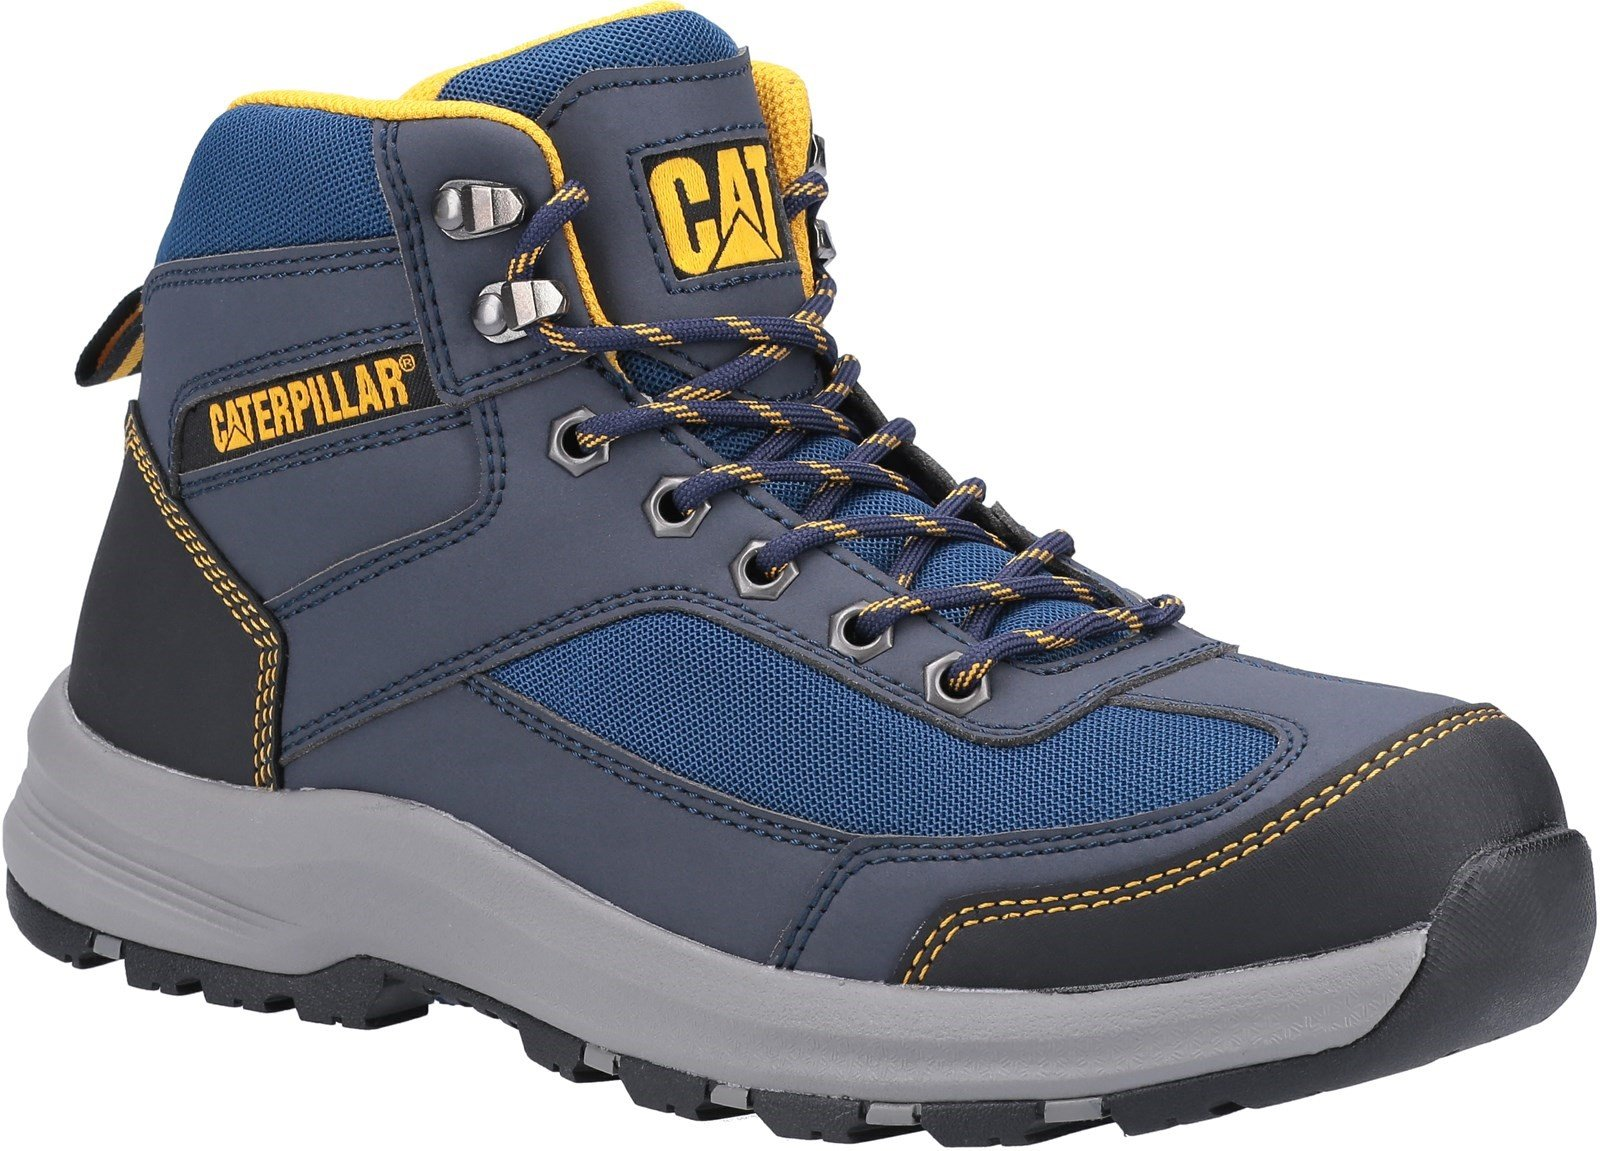 Caterpillar Unisex Elmore Mid Safety Hiker Boot Various Colours - Navy 6